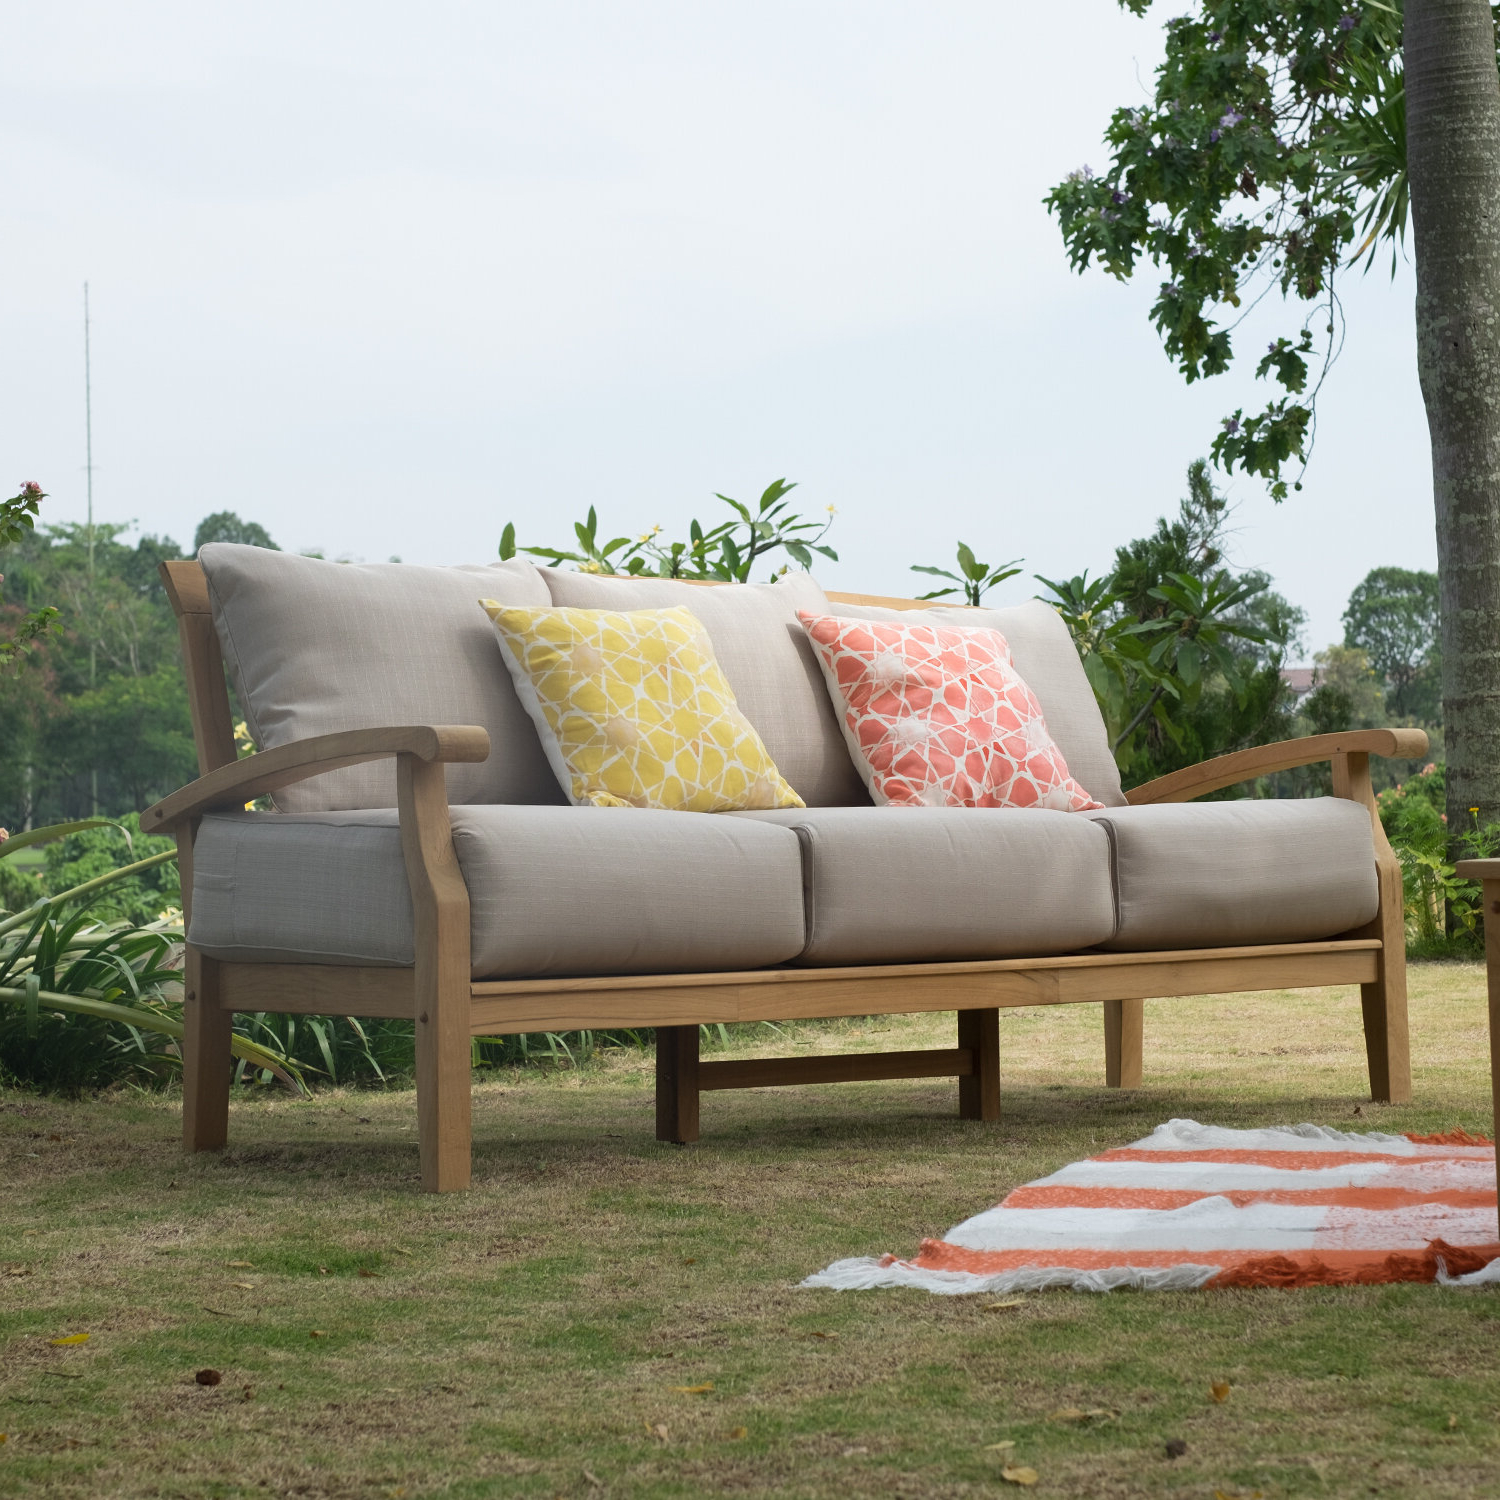 Recent Montford Teak Patio Sofas With Cushions With Summerton Teak Patio Sofa With Cushions (View 17 of 20)